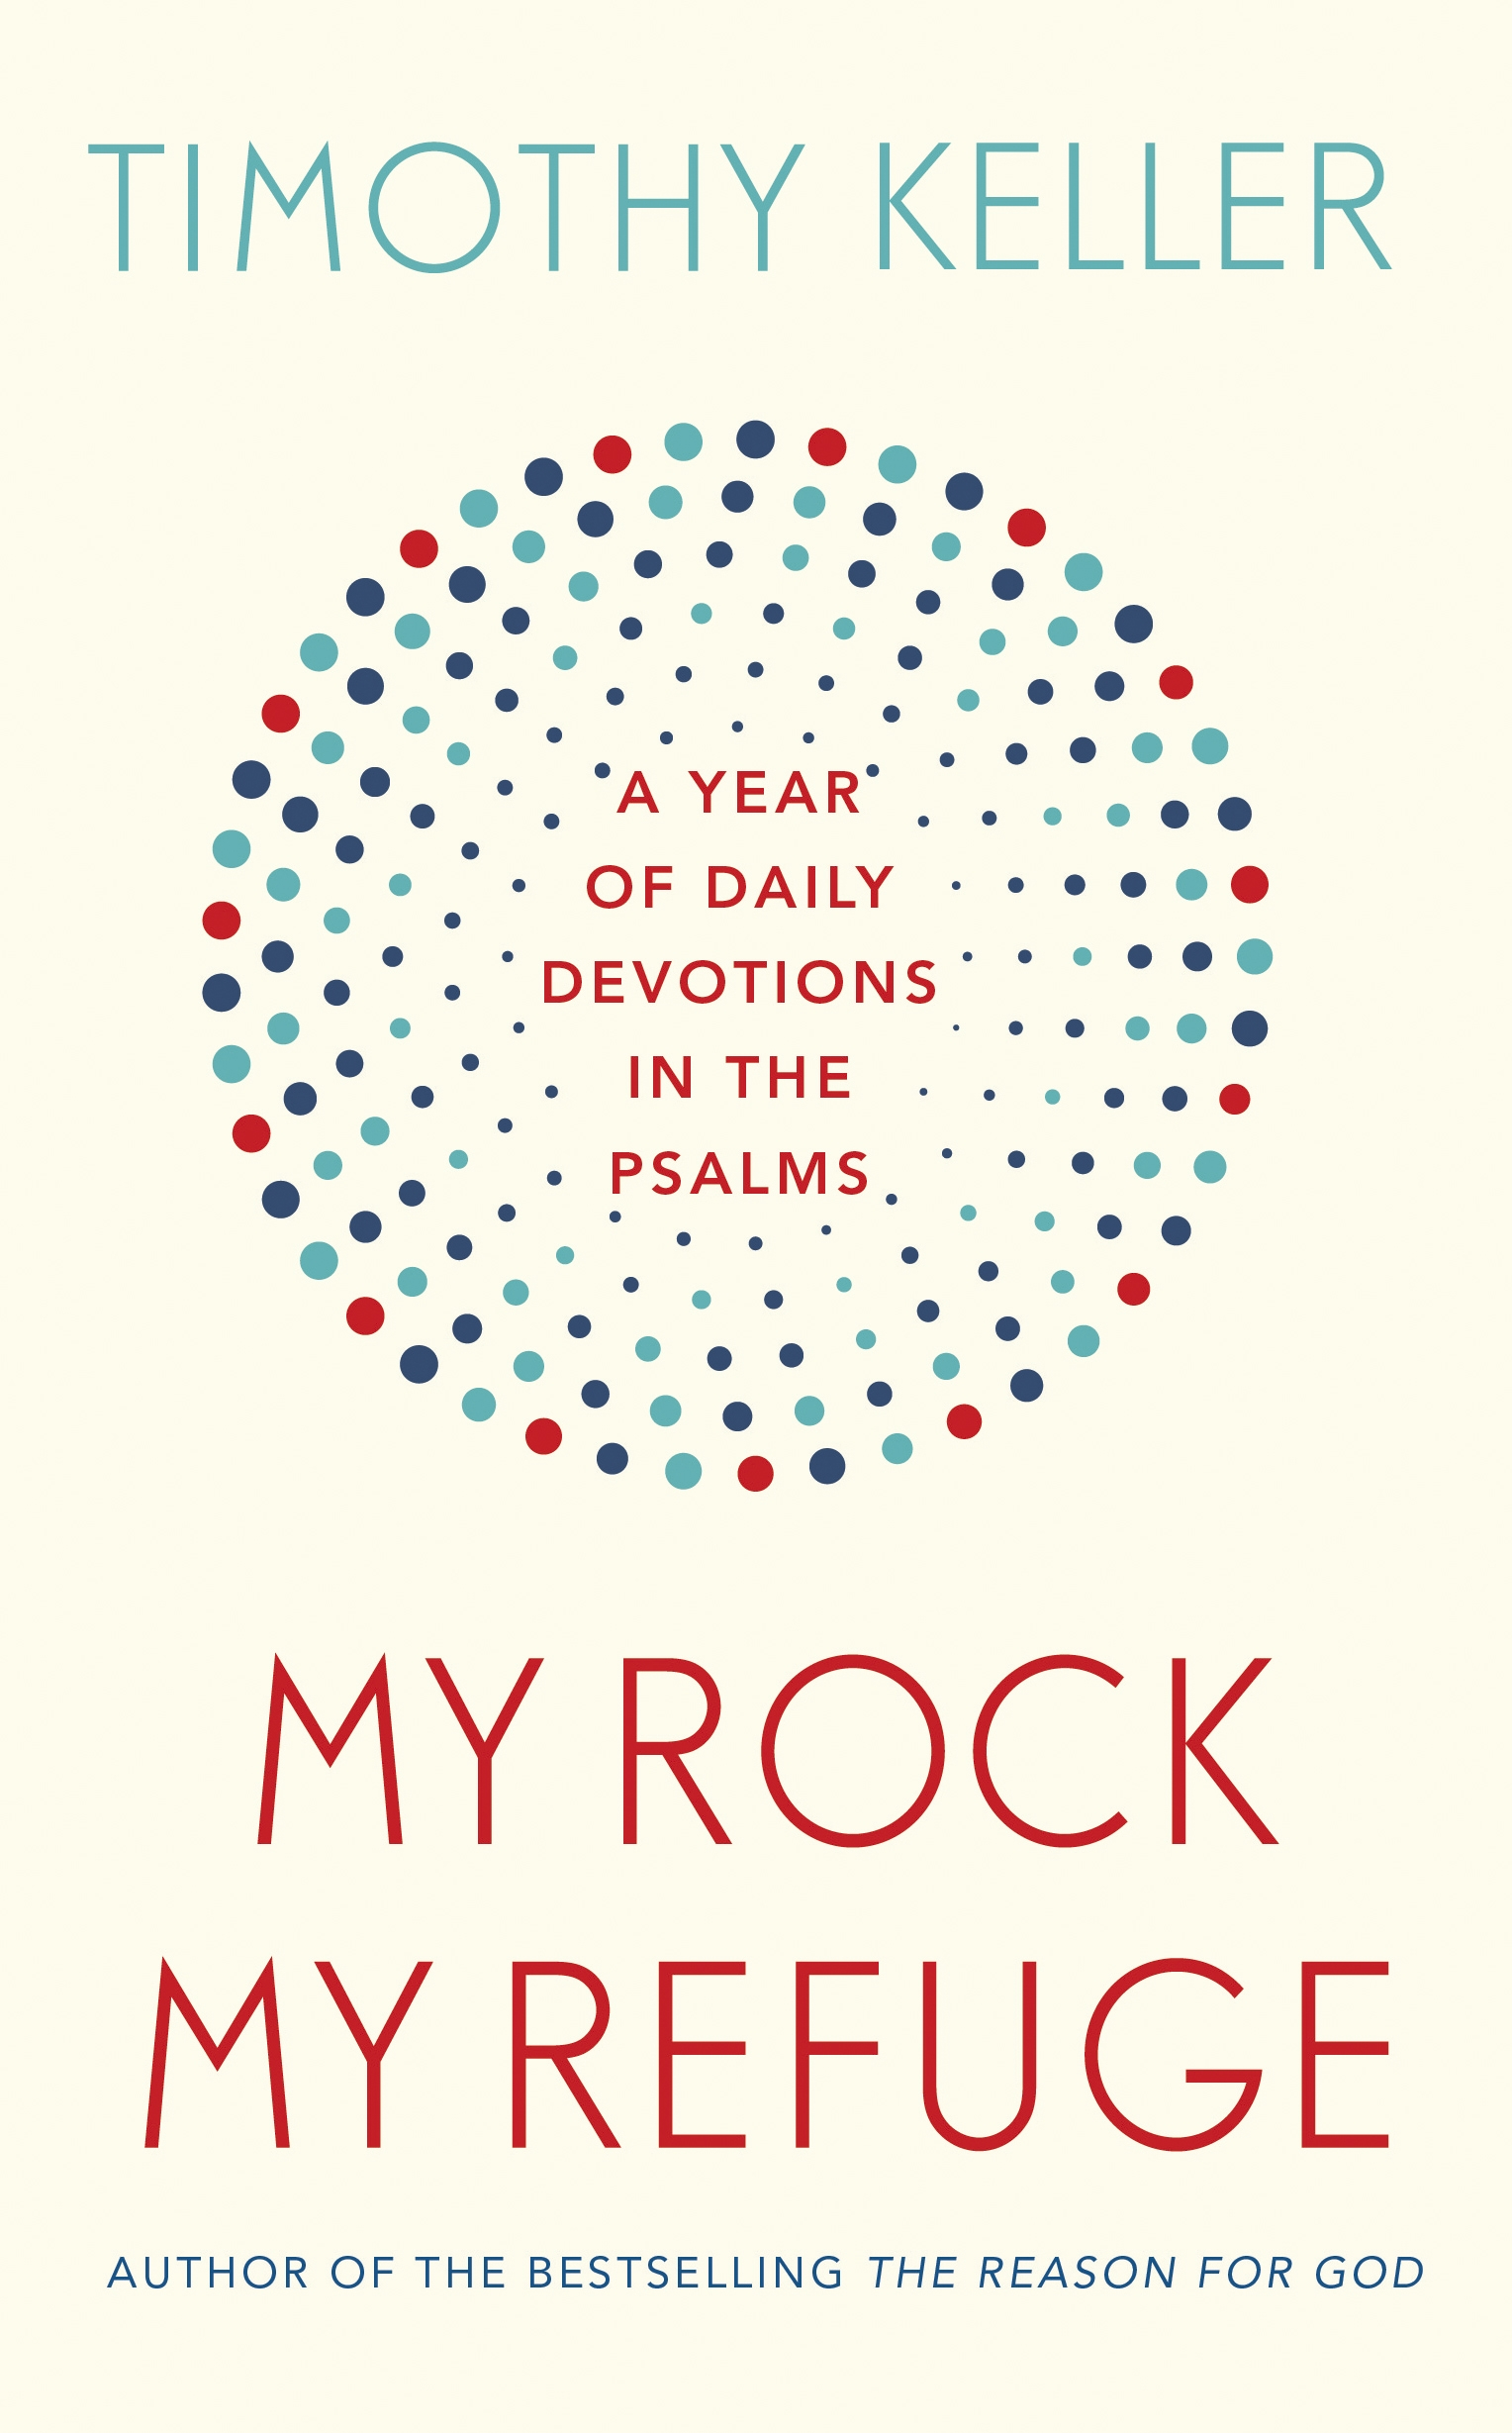 My Rock; My Refuge: A Year of Daily Devotions in the Psalms (US title: The Songs of Jesus) by Timothy Keller, ISBN: 9781473614222